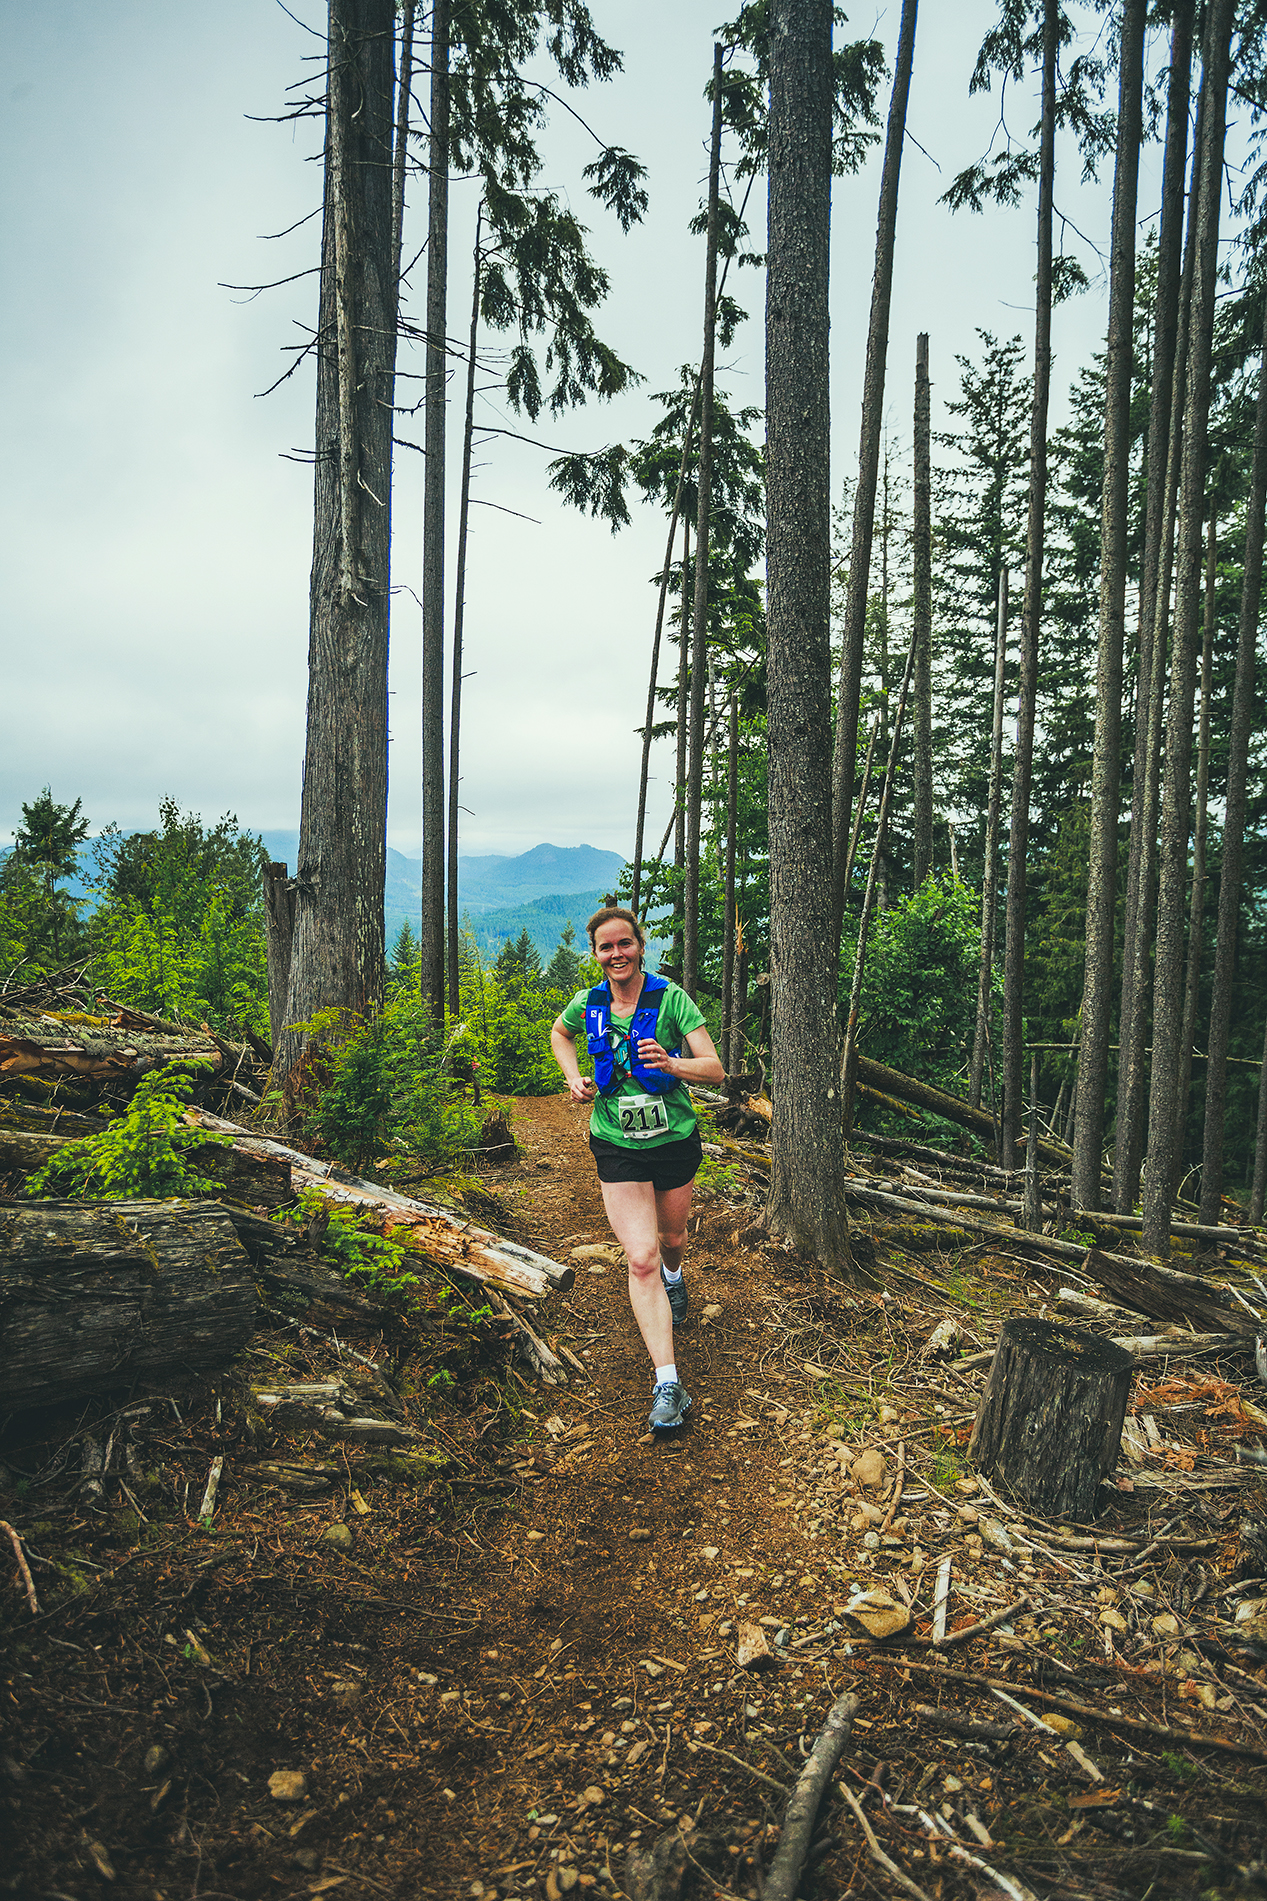 Fraser Valley Trail Races - Bear Mountain - IMG_2647 by Brice Ferre Studio - Vancouver Portrait Adventure and Athlete Photographer.jpg